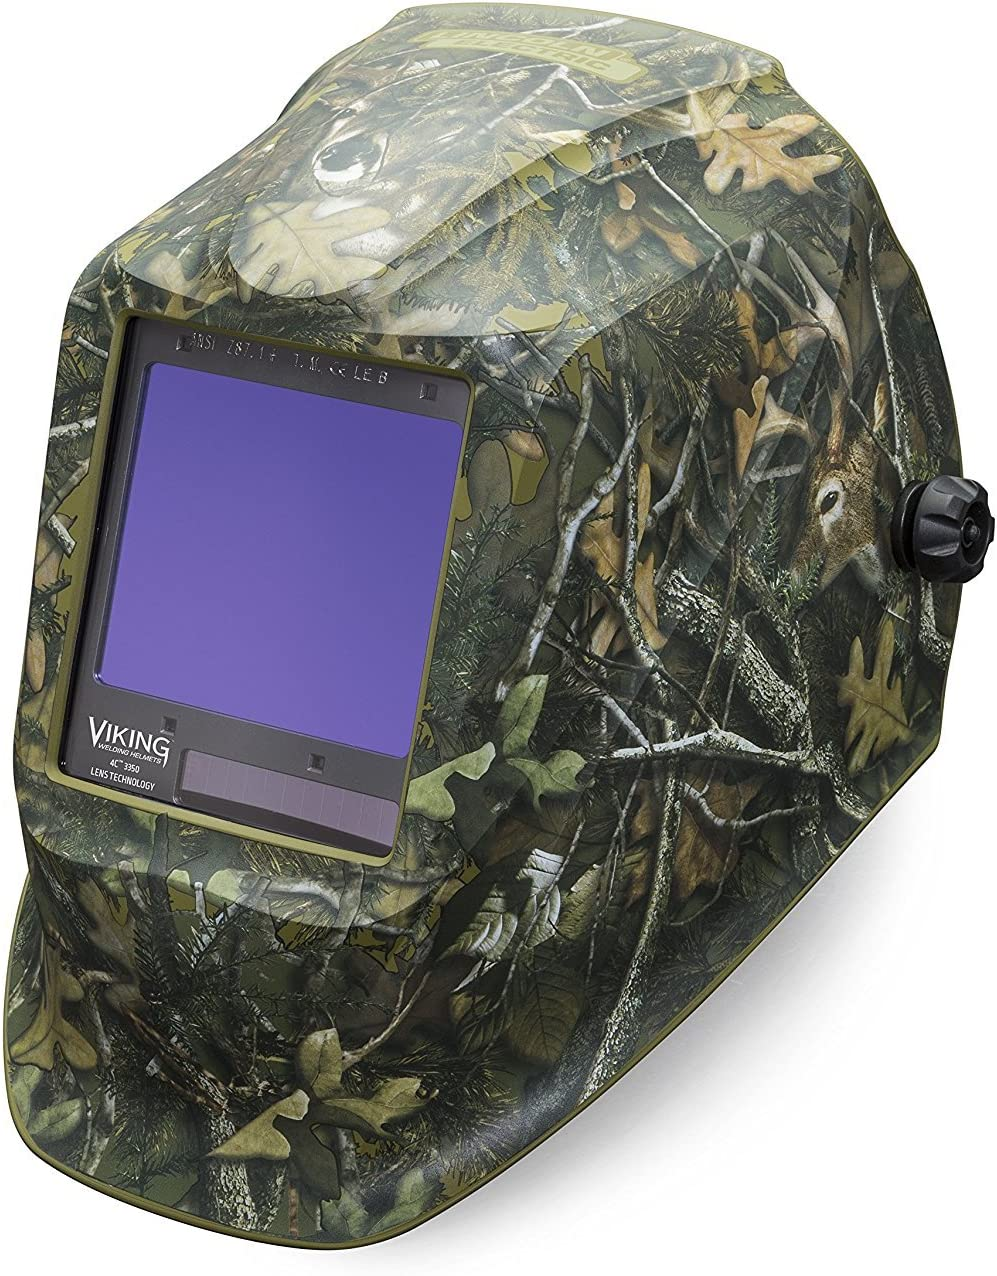 KP2898-1 LINCOLN ELECTRIC Front Lens Cover,Headgear,3 Filter Shade